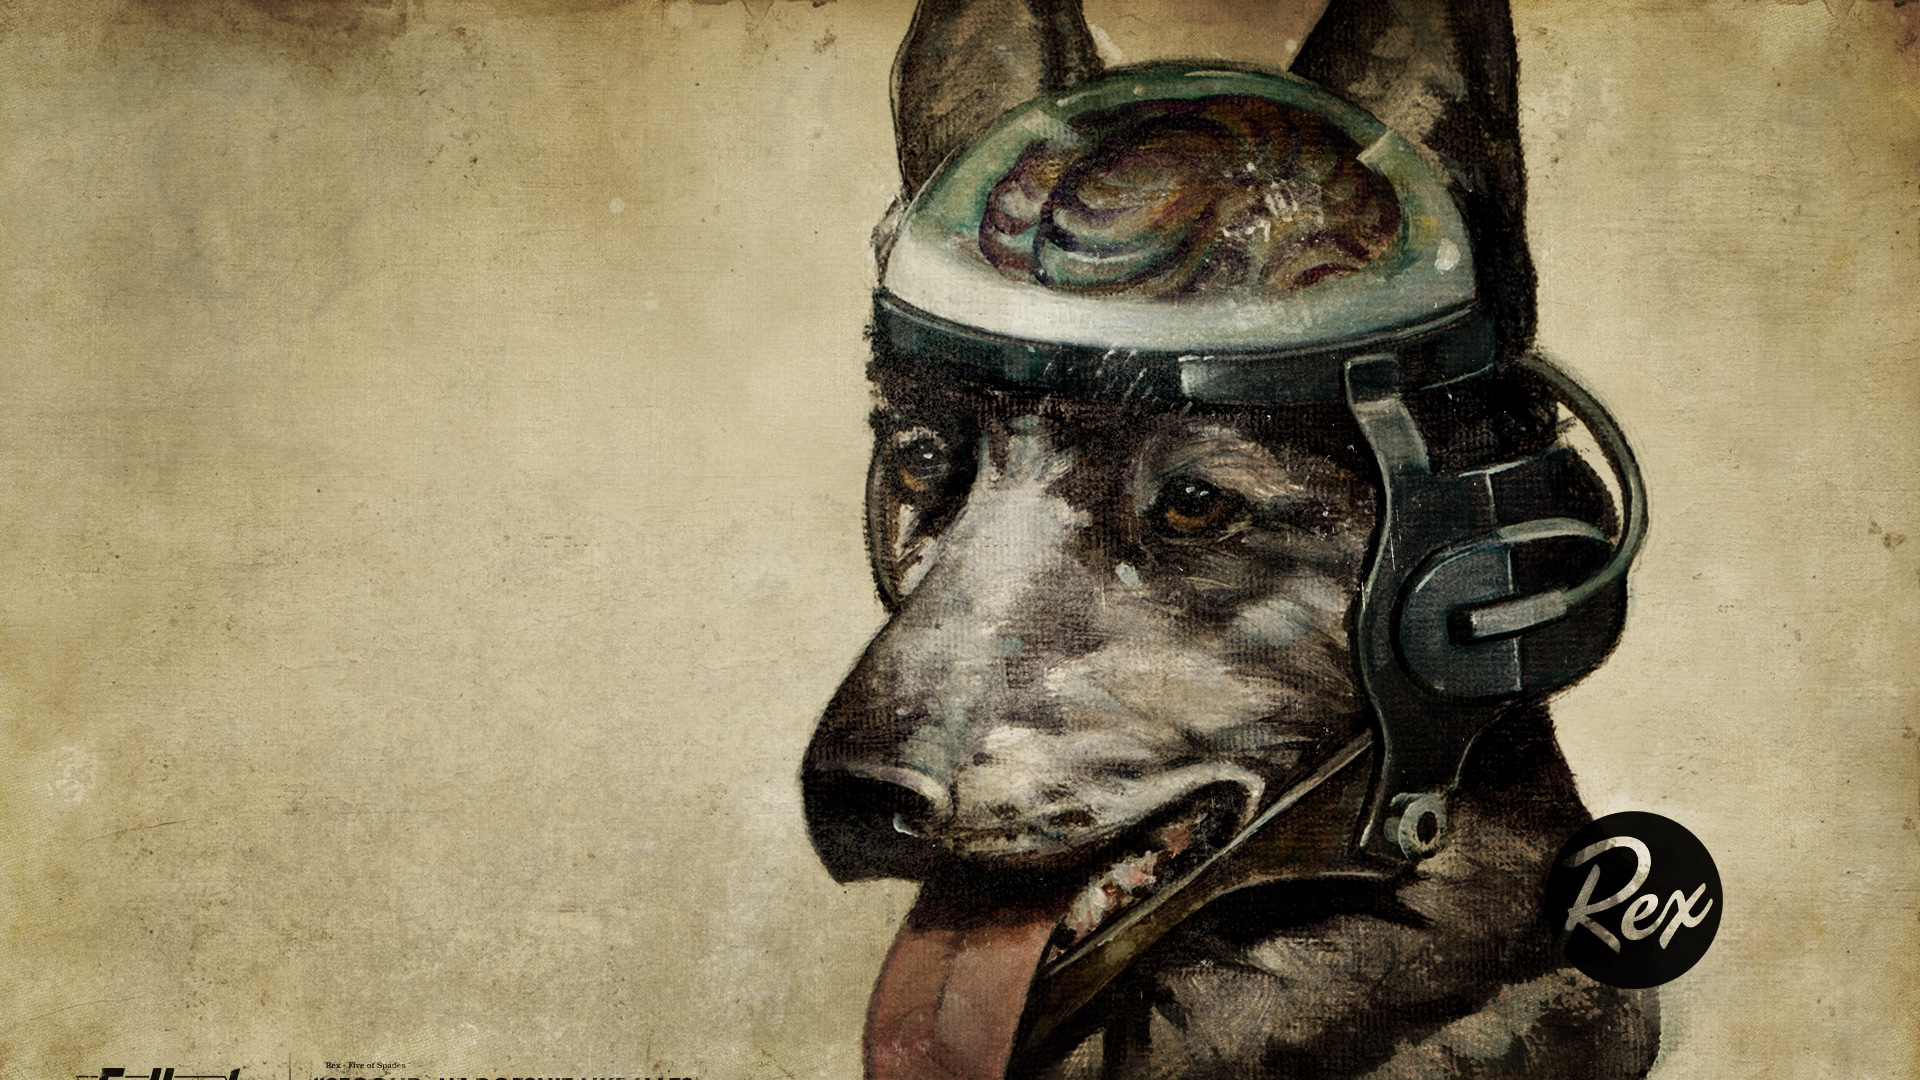 Download Wallpaper 1920x1080 Fallout Quote Dog Look Full Hd